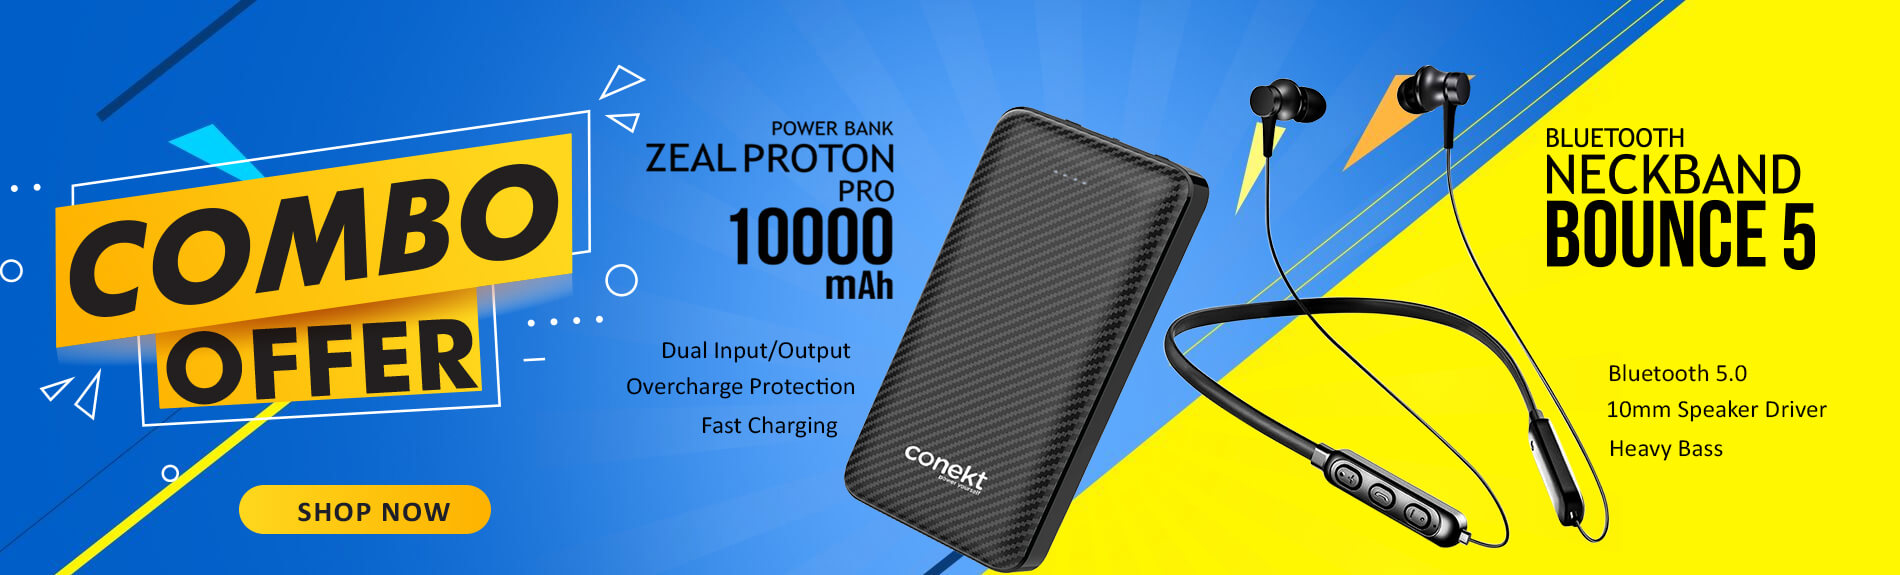 Bluetooth and Power bank combo offer